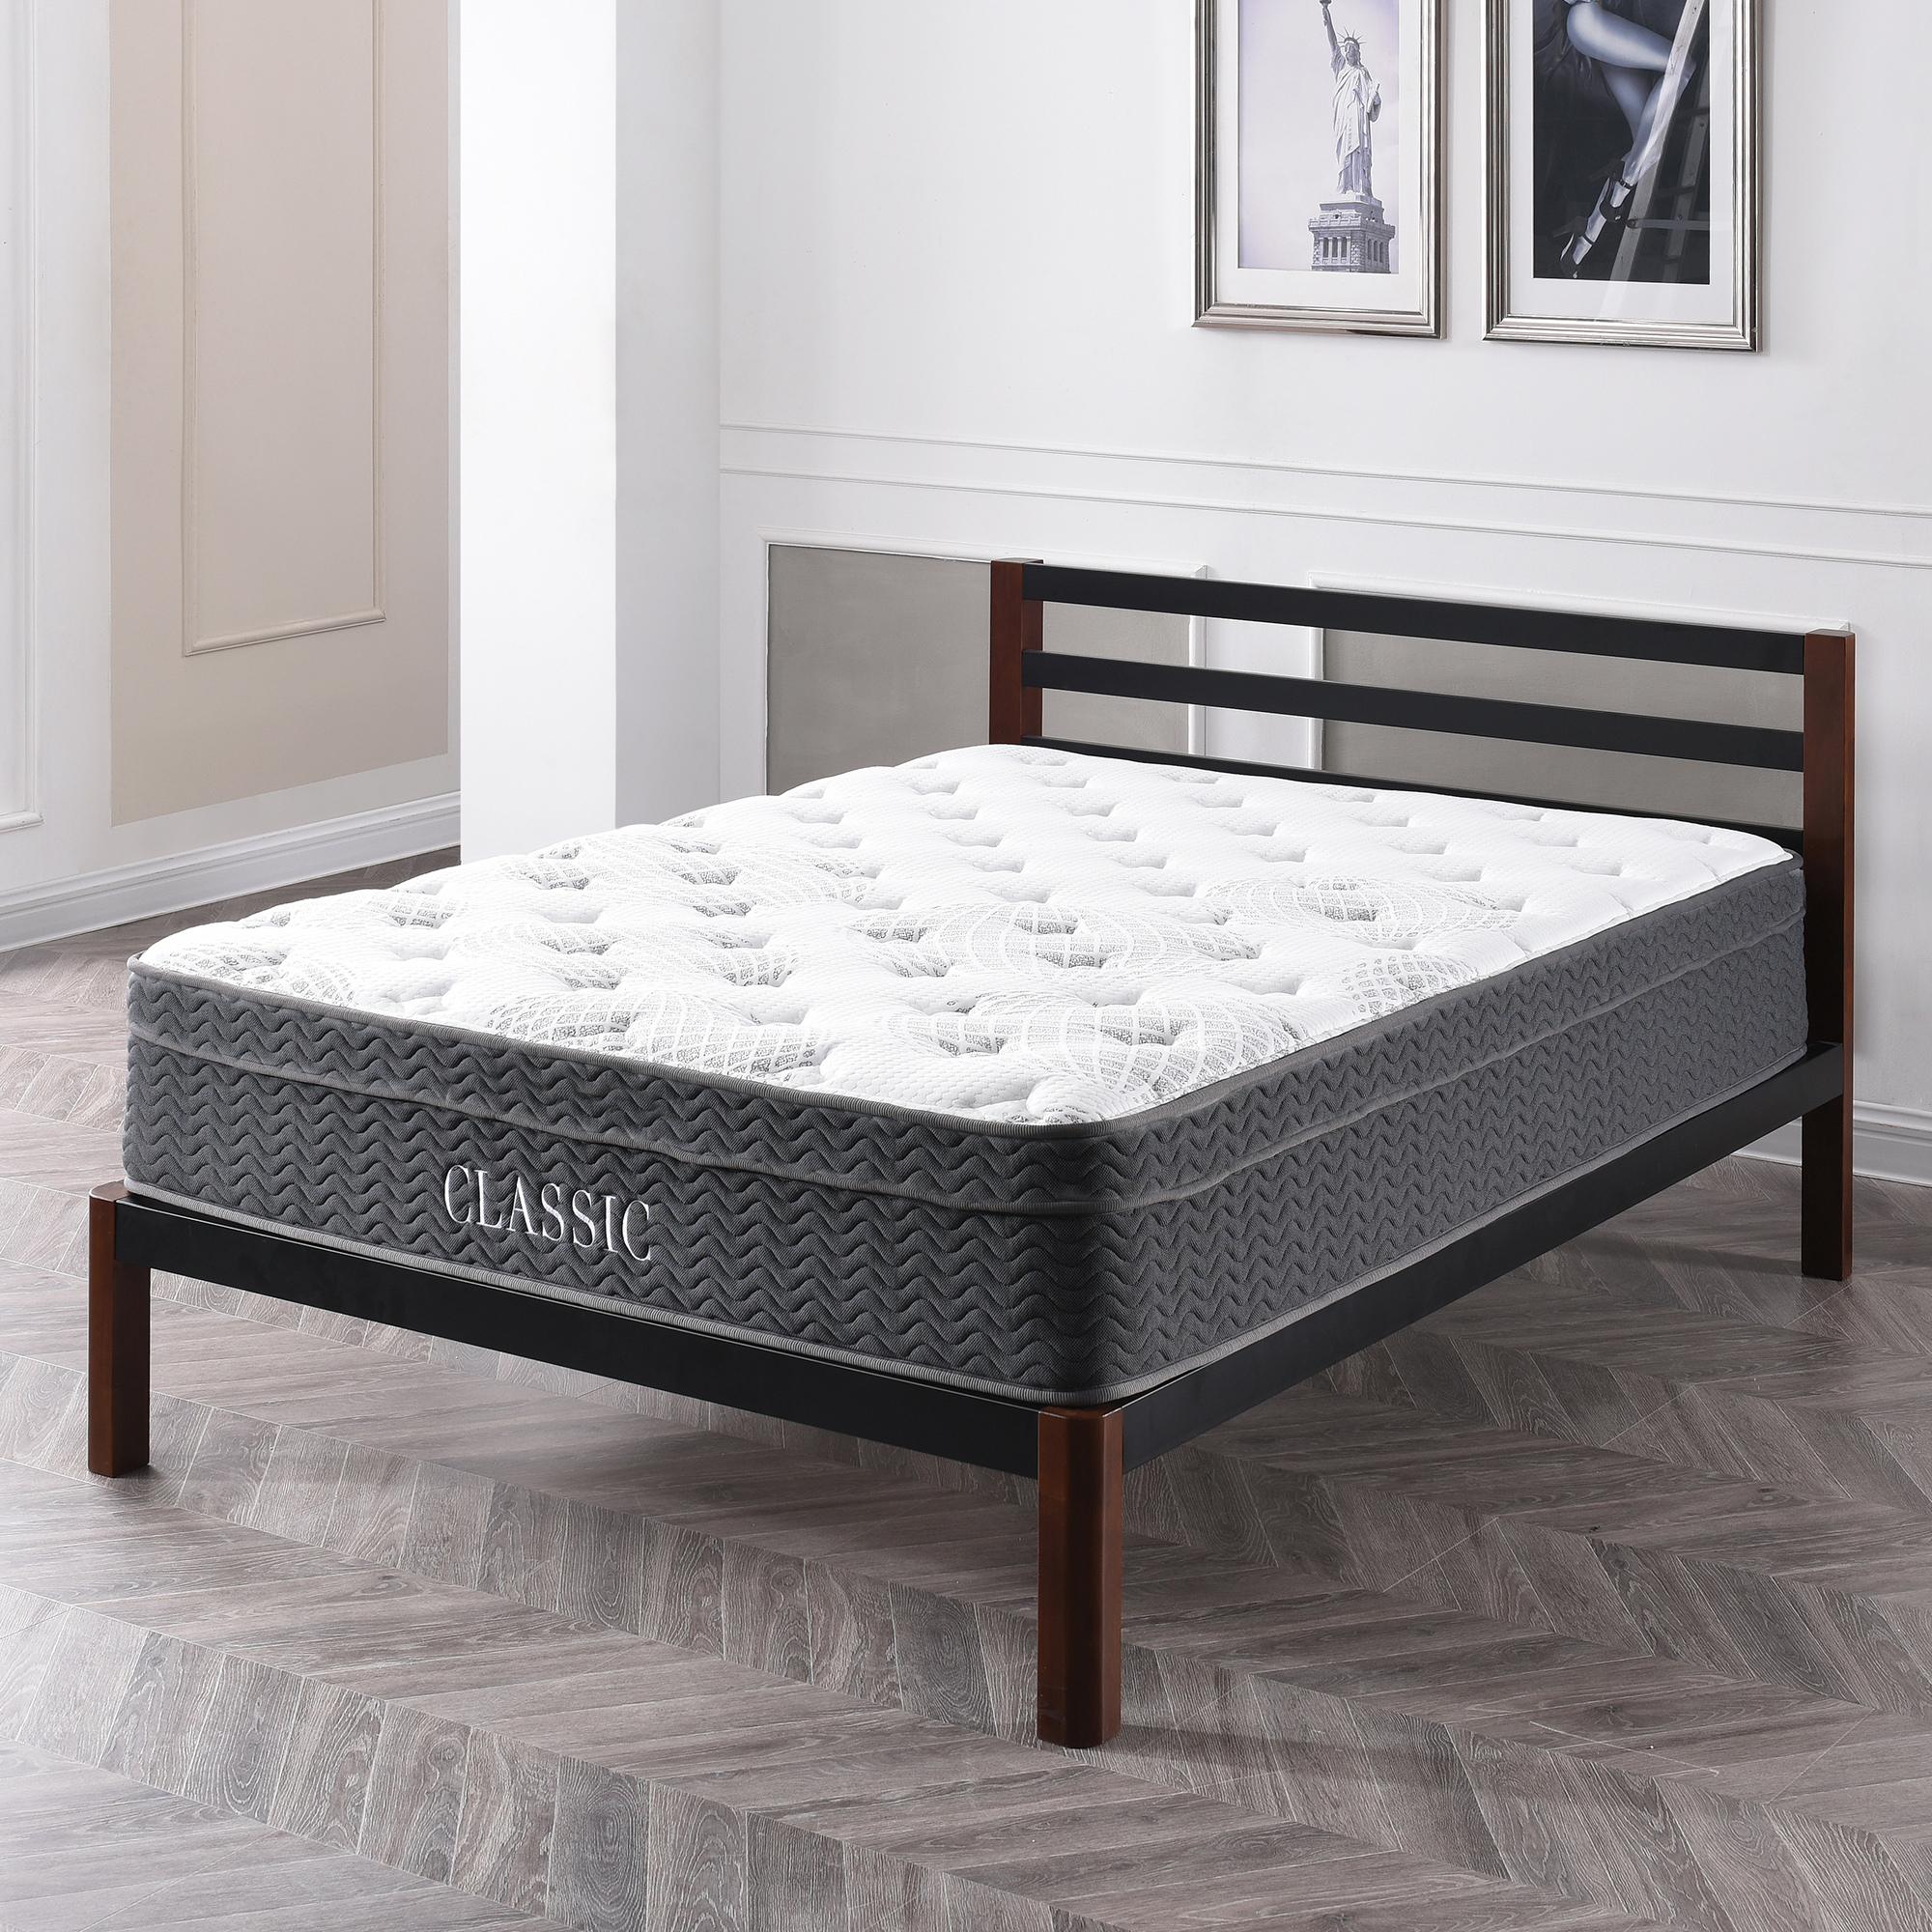 Modern Sleep Celadon Hybrid Latex and Innerspring 12-Inch Mattress, Multiple Sizes